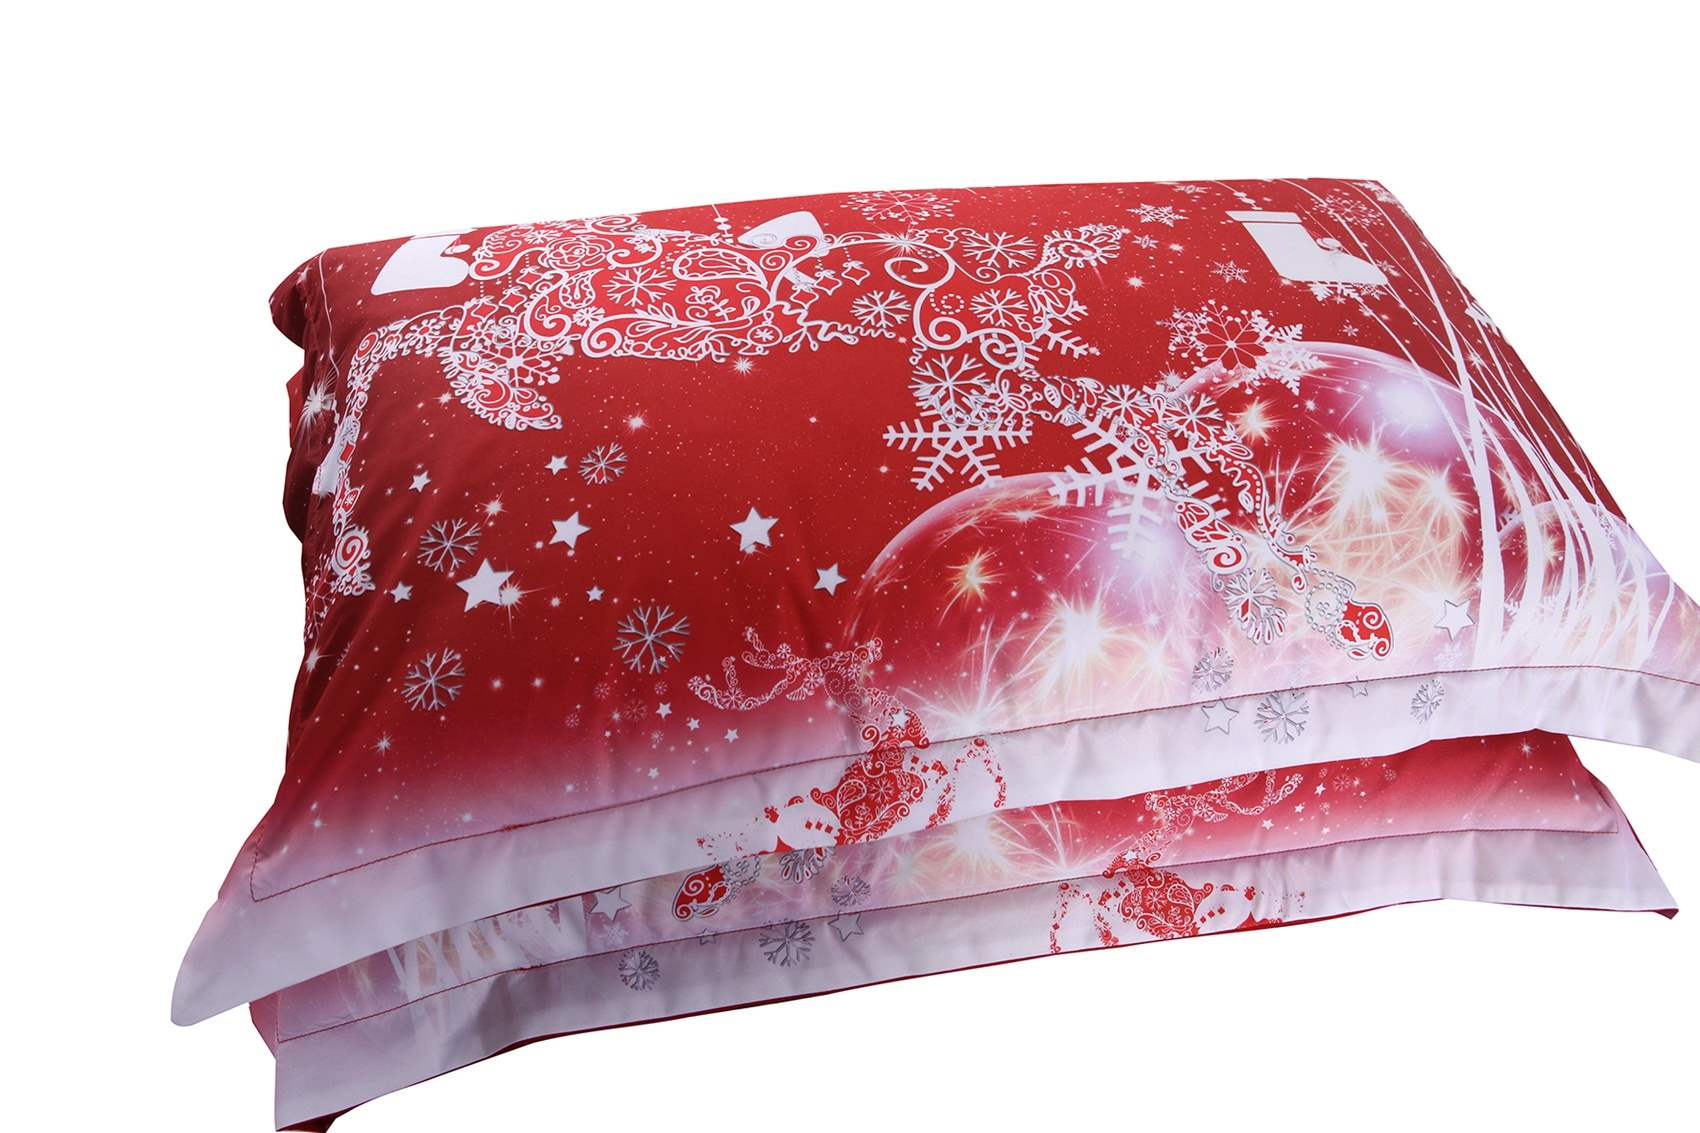 Vivilinen 3D Christmas Reindeer and Snowflake Printed Cotton 4-Piece Red Bedding Sets